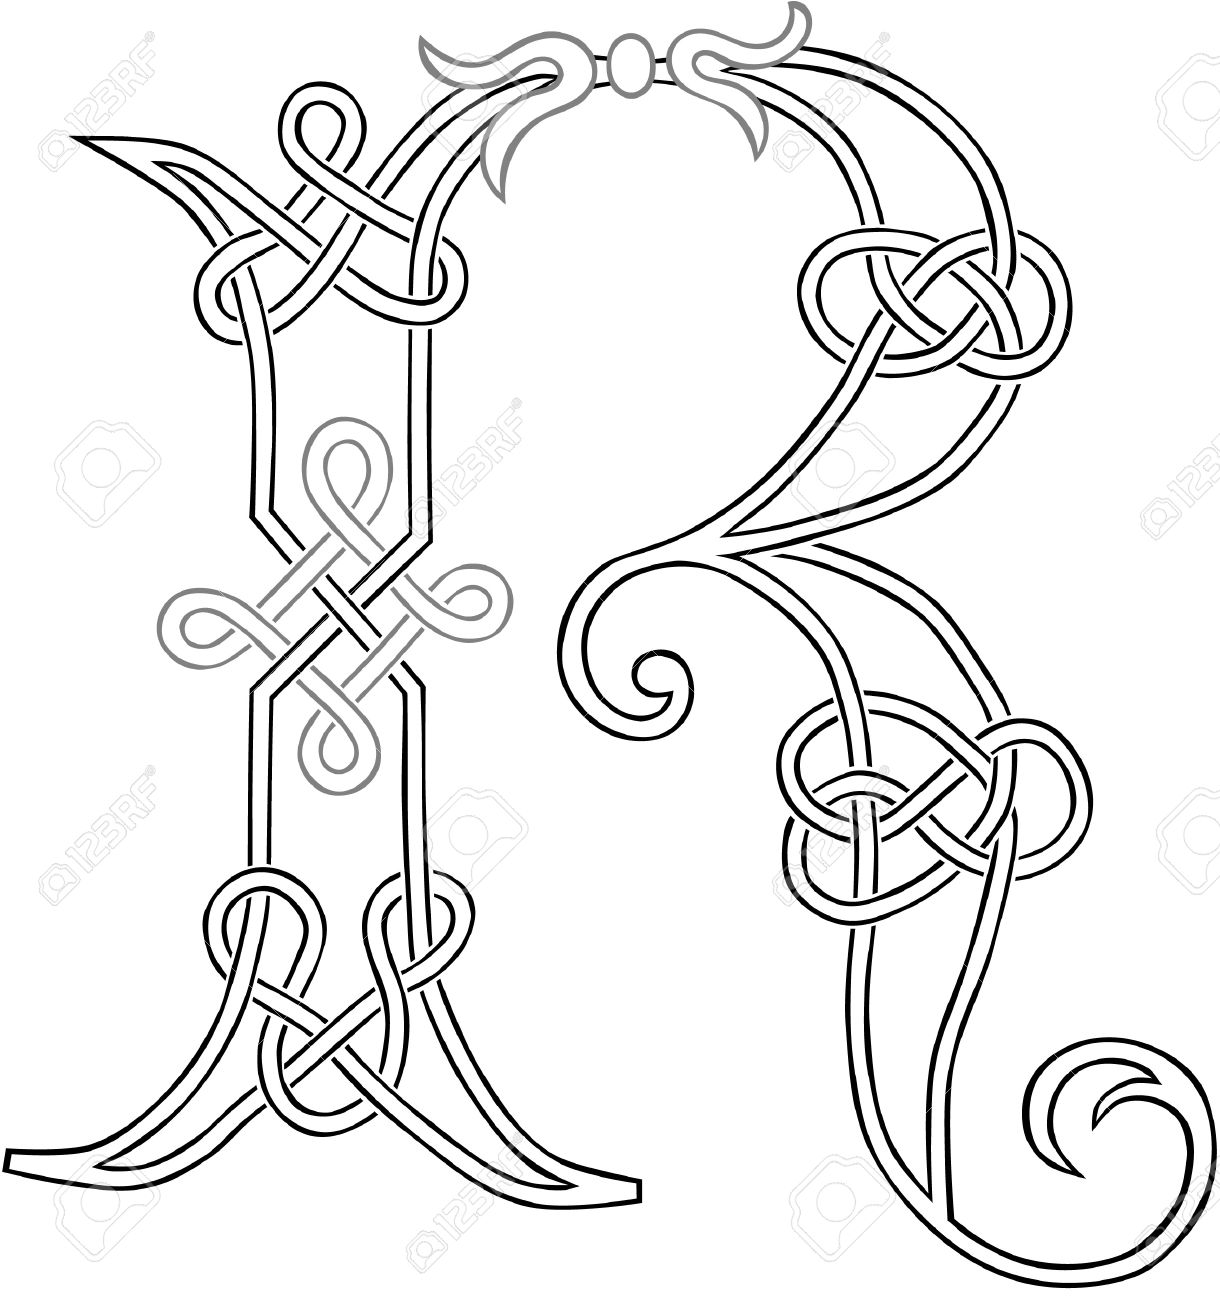 A Celtic Knot work Capital Letter R Stylized Outline Royalty Free